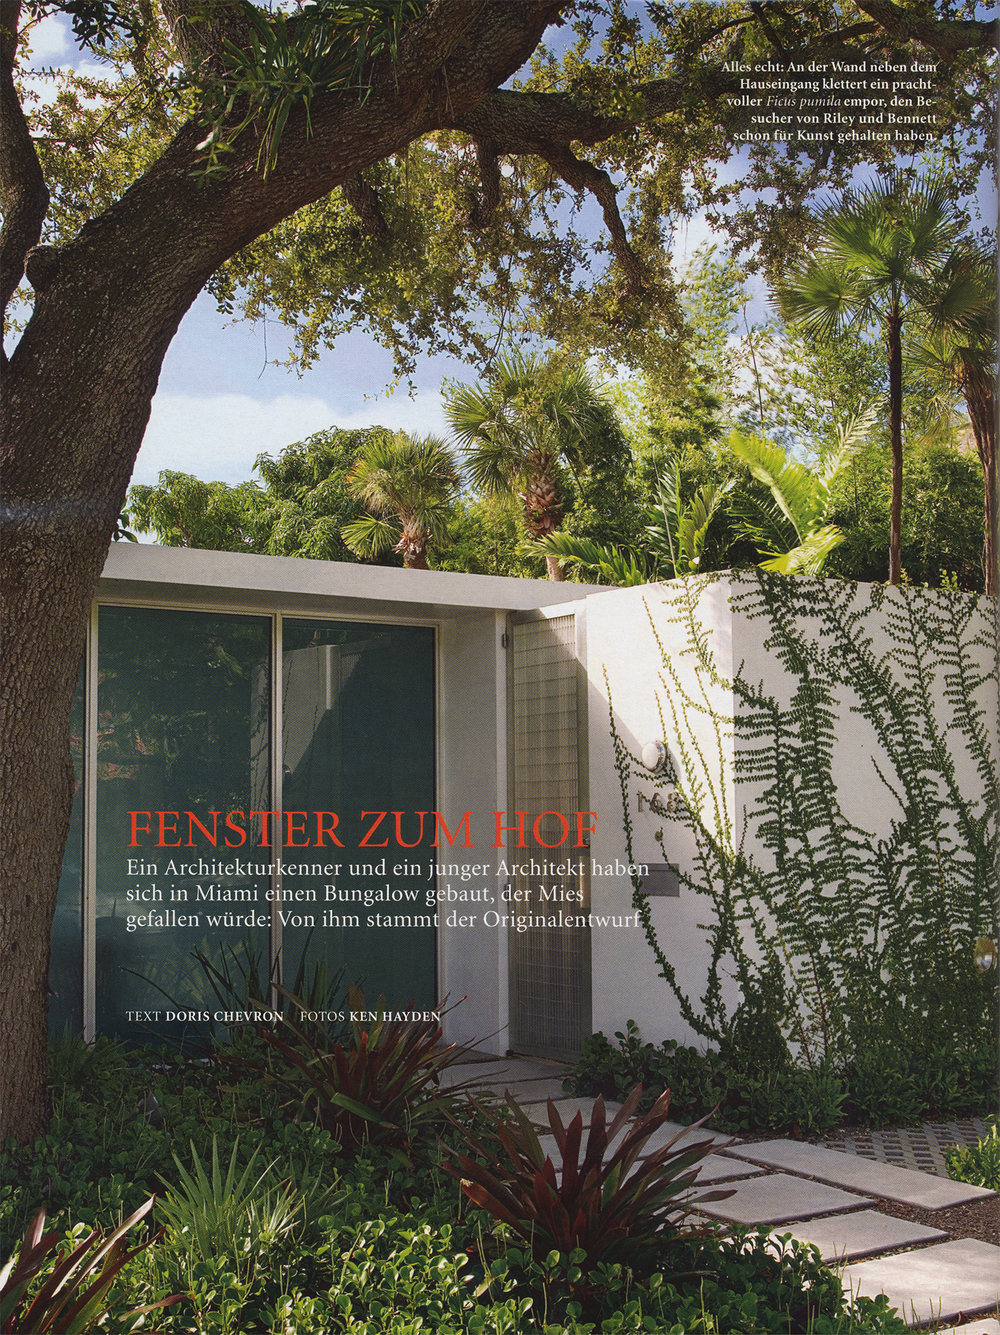 Architectural Digest Germany features a home designed by former Museum of Modern Art Architecture curator Terrence Riley and John Bennett.  Mention of the Jimmy Desk for modernlink's onelink collection designed by Piet Houtenbos appears on page 4.